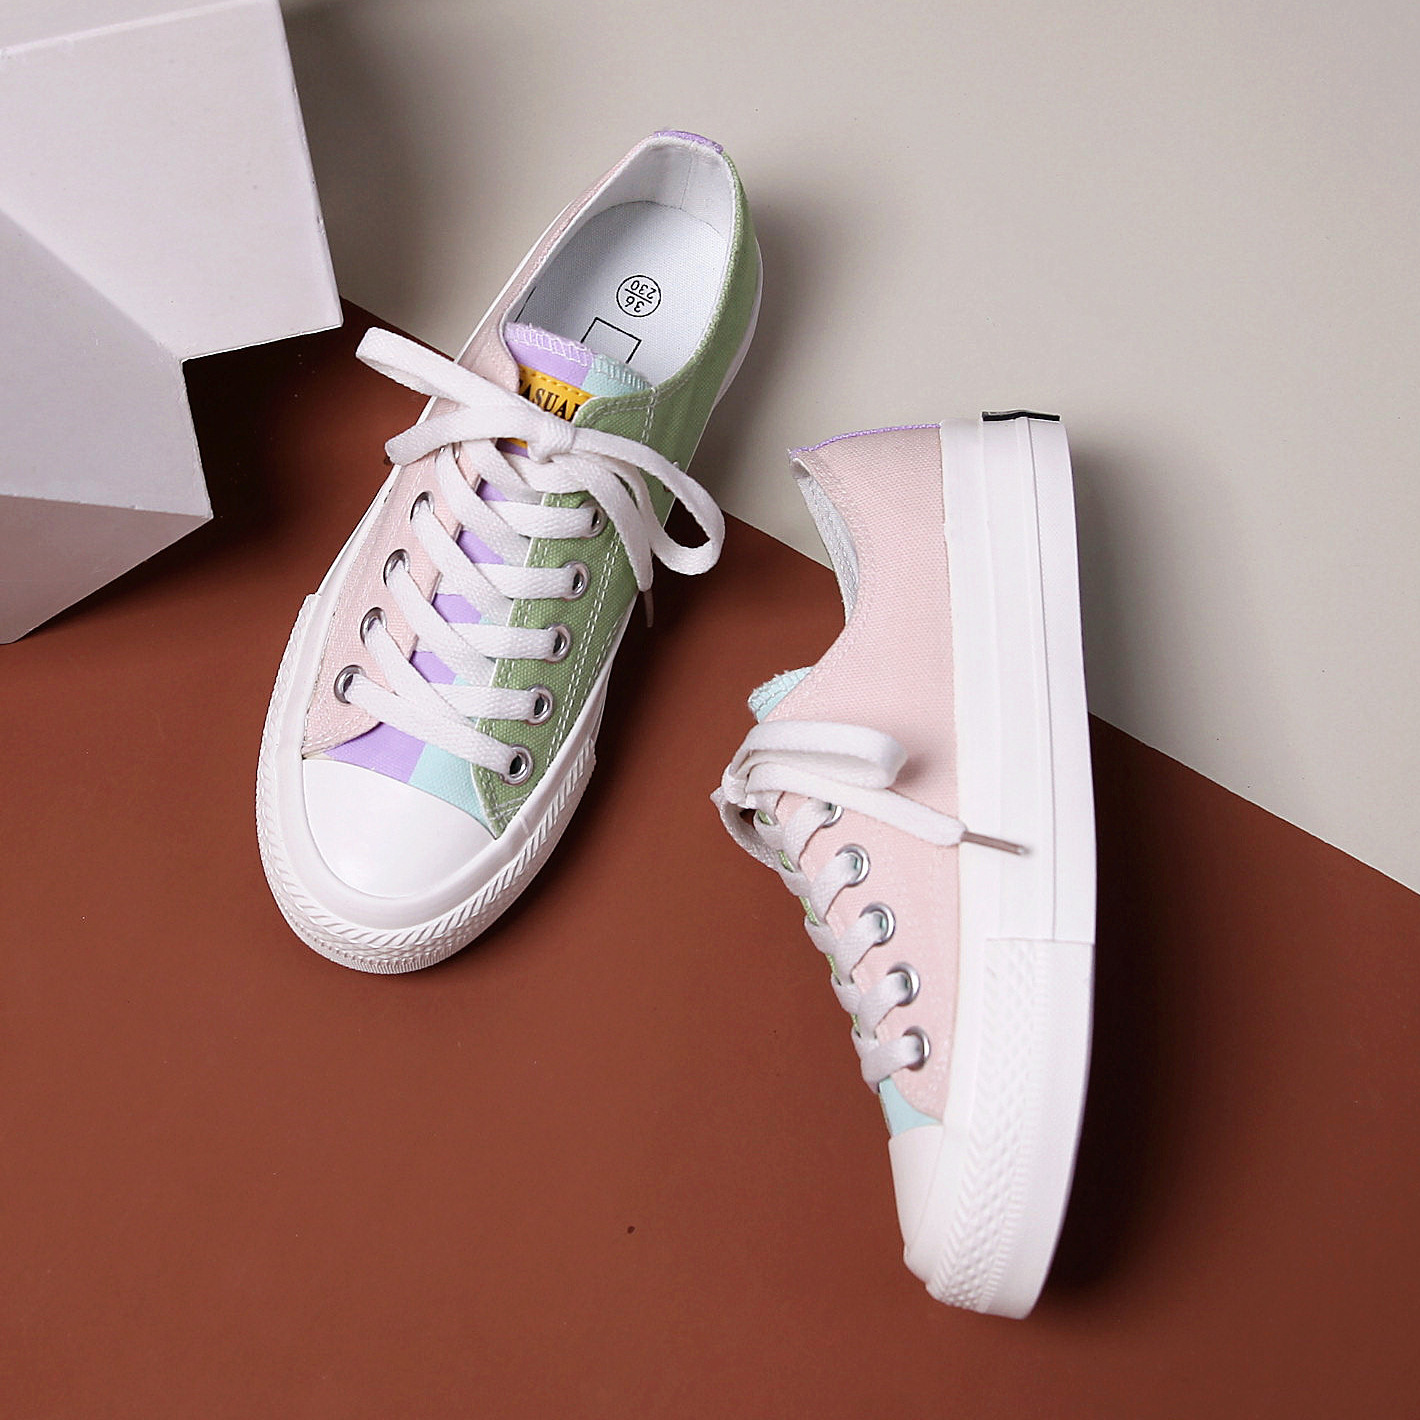 Fashion Canvas Sneakers 2020 Spring New Breathable Comfort Trendy Women's Shoes Female Sports Flats Casual Shoes Women